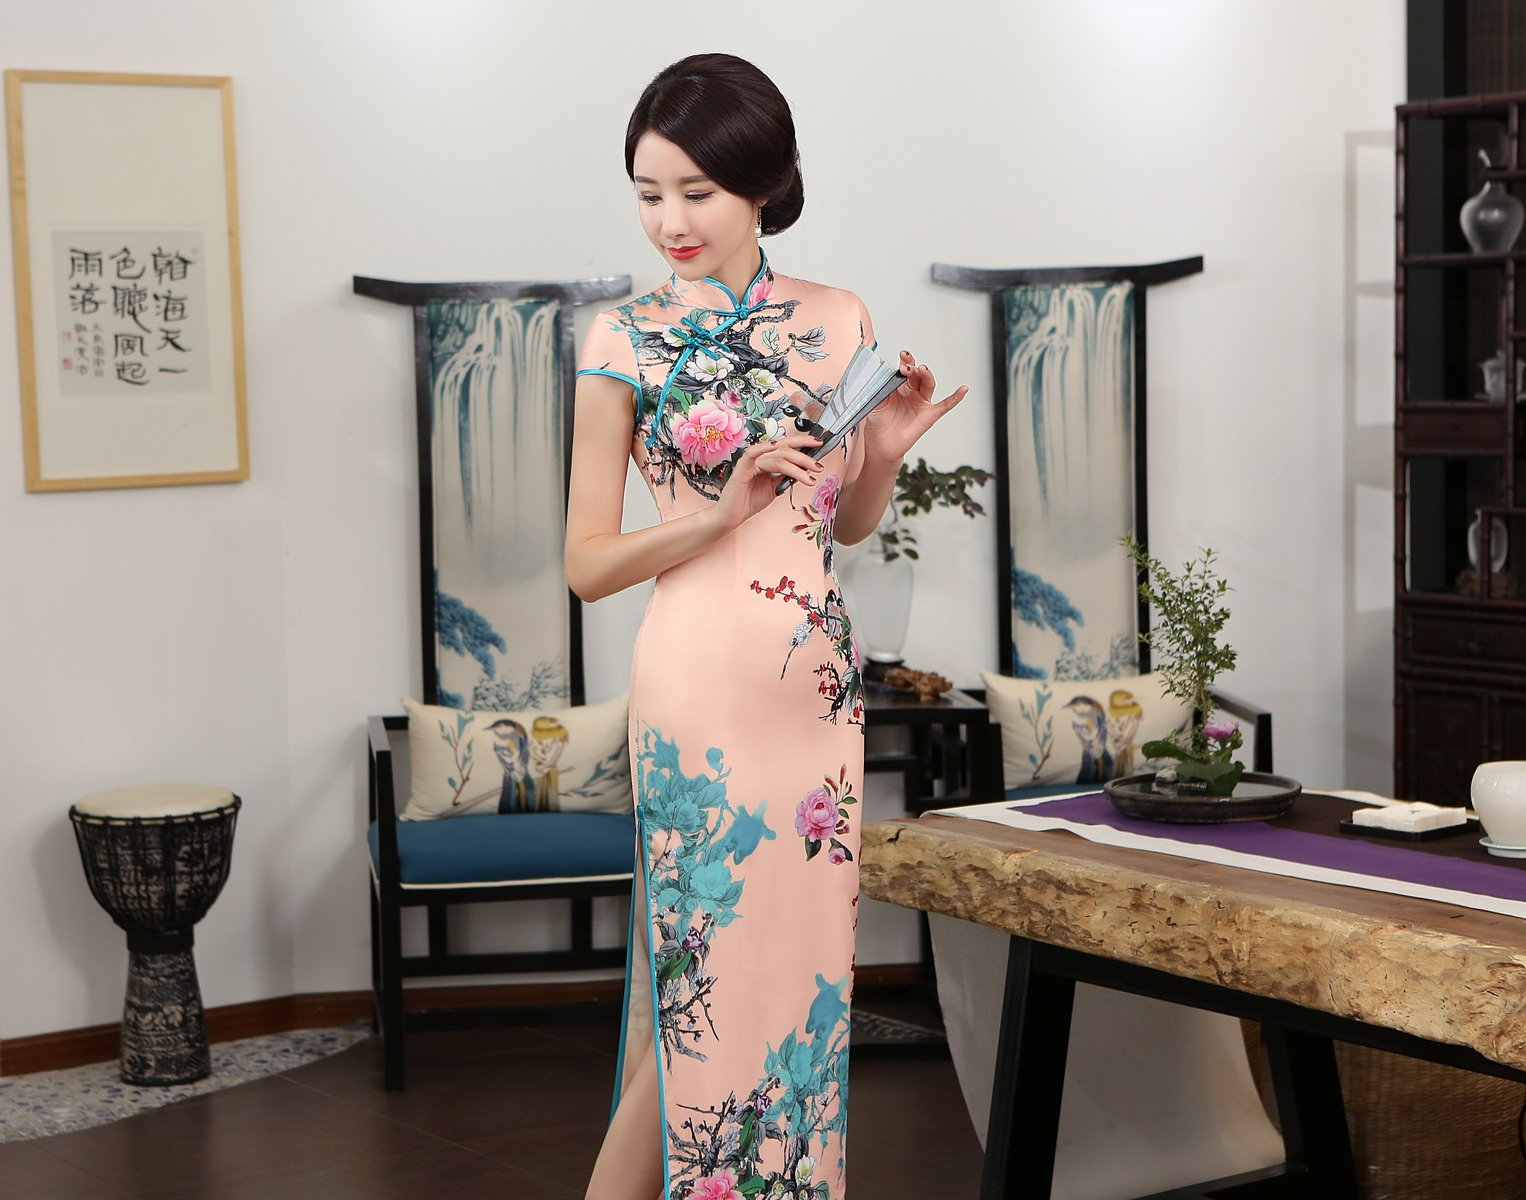 ACVIP Women Stand Collar Cap Sleeve Retro Chinese Floral Maxi Qipao Cheongsam (China 3XL/Bust:40.9'') by ACVIP (Image #9)